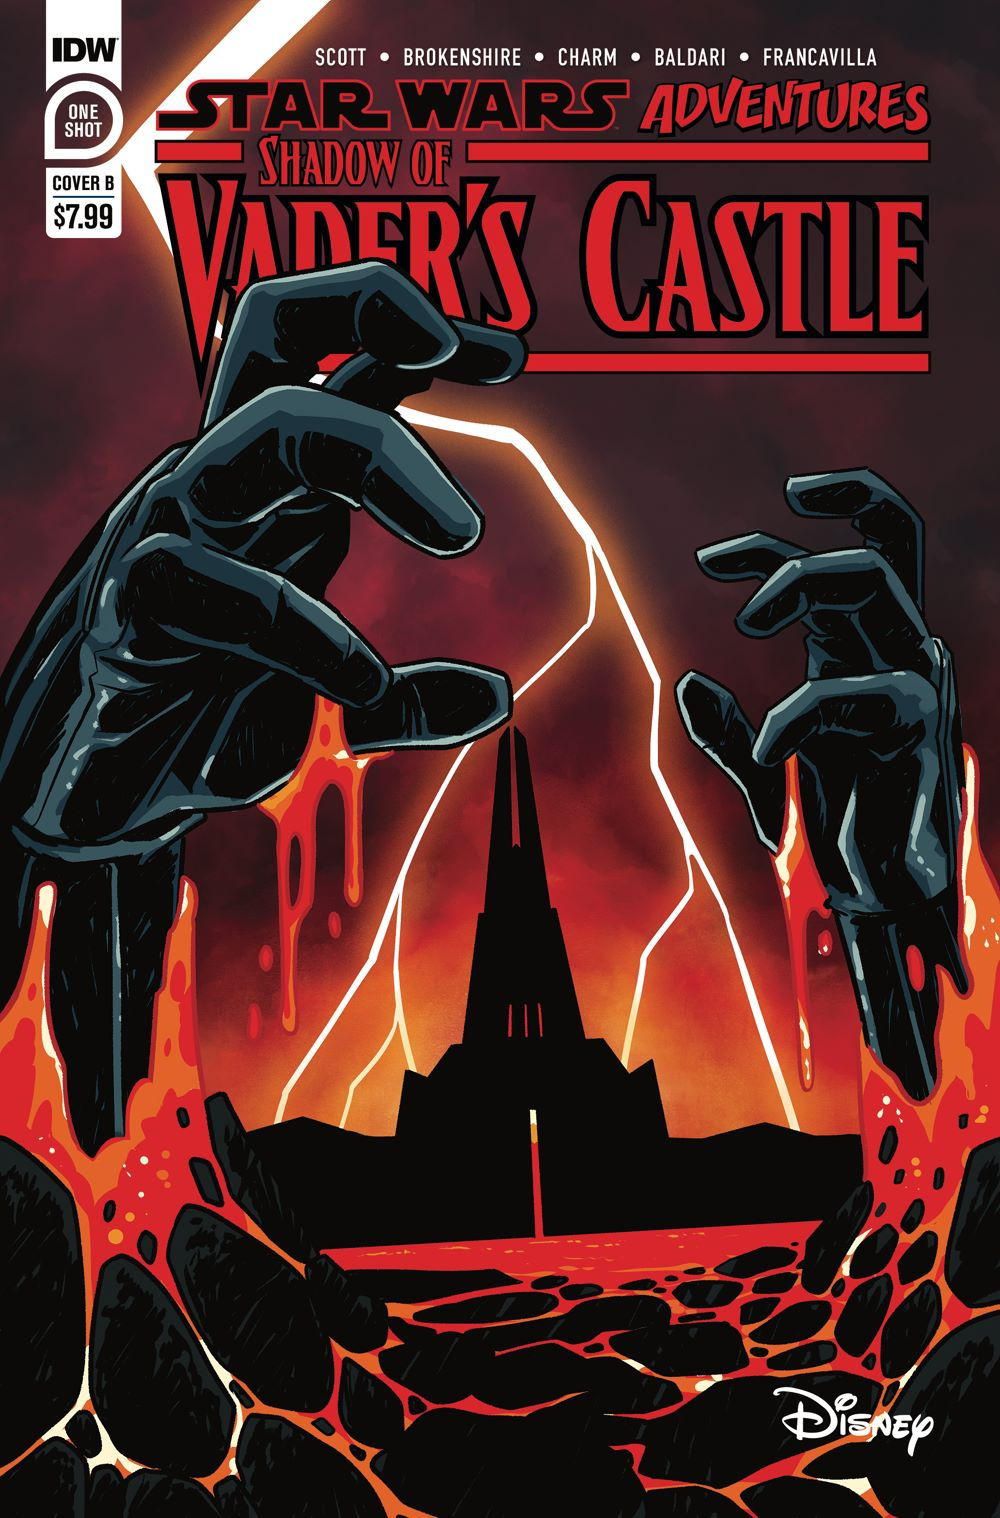 SWShadowofVader-Cover-B ComicList Previews: STAR WARS ADVENTURES SHADOW OF VADER'S CASTLE #1